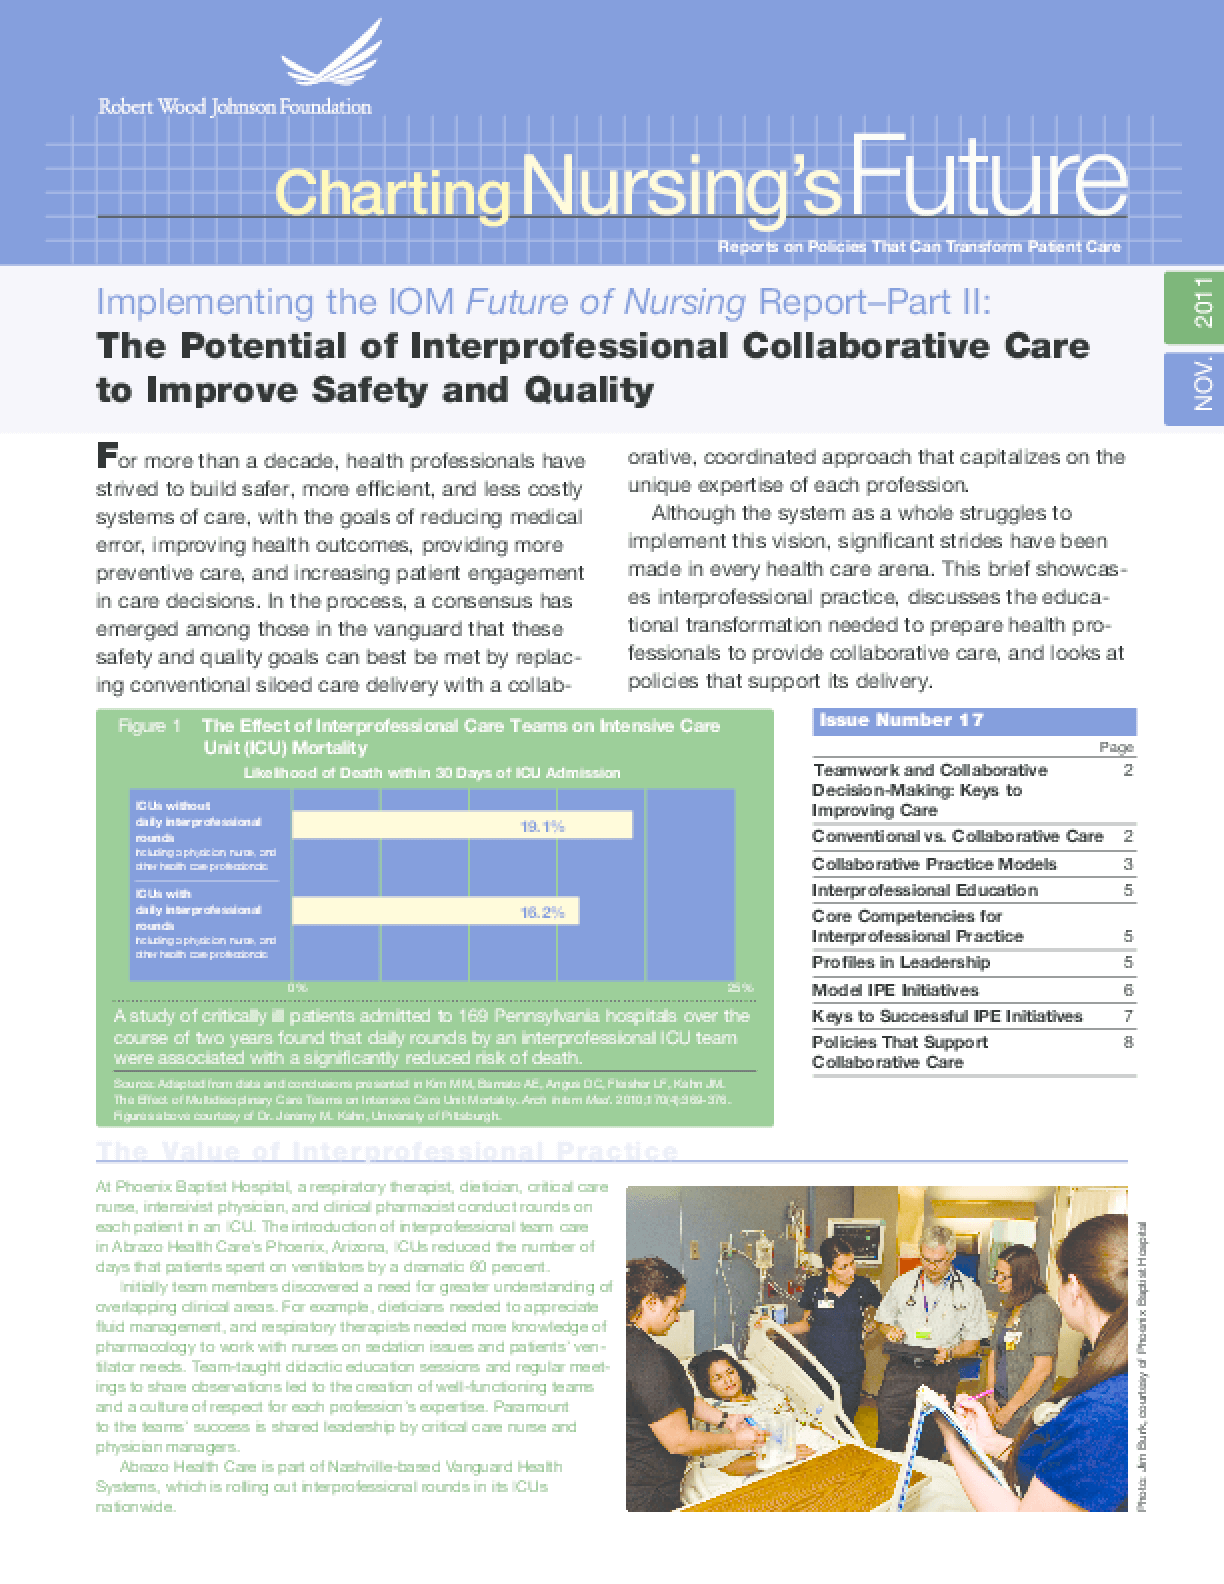 Implementing the IOM Future of Nursing Report Part II: The Potential of Interprofessional Collaborative Care to Improve Safety and Quality